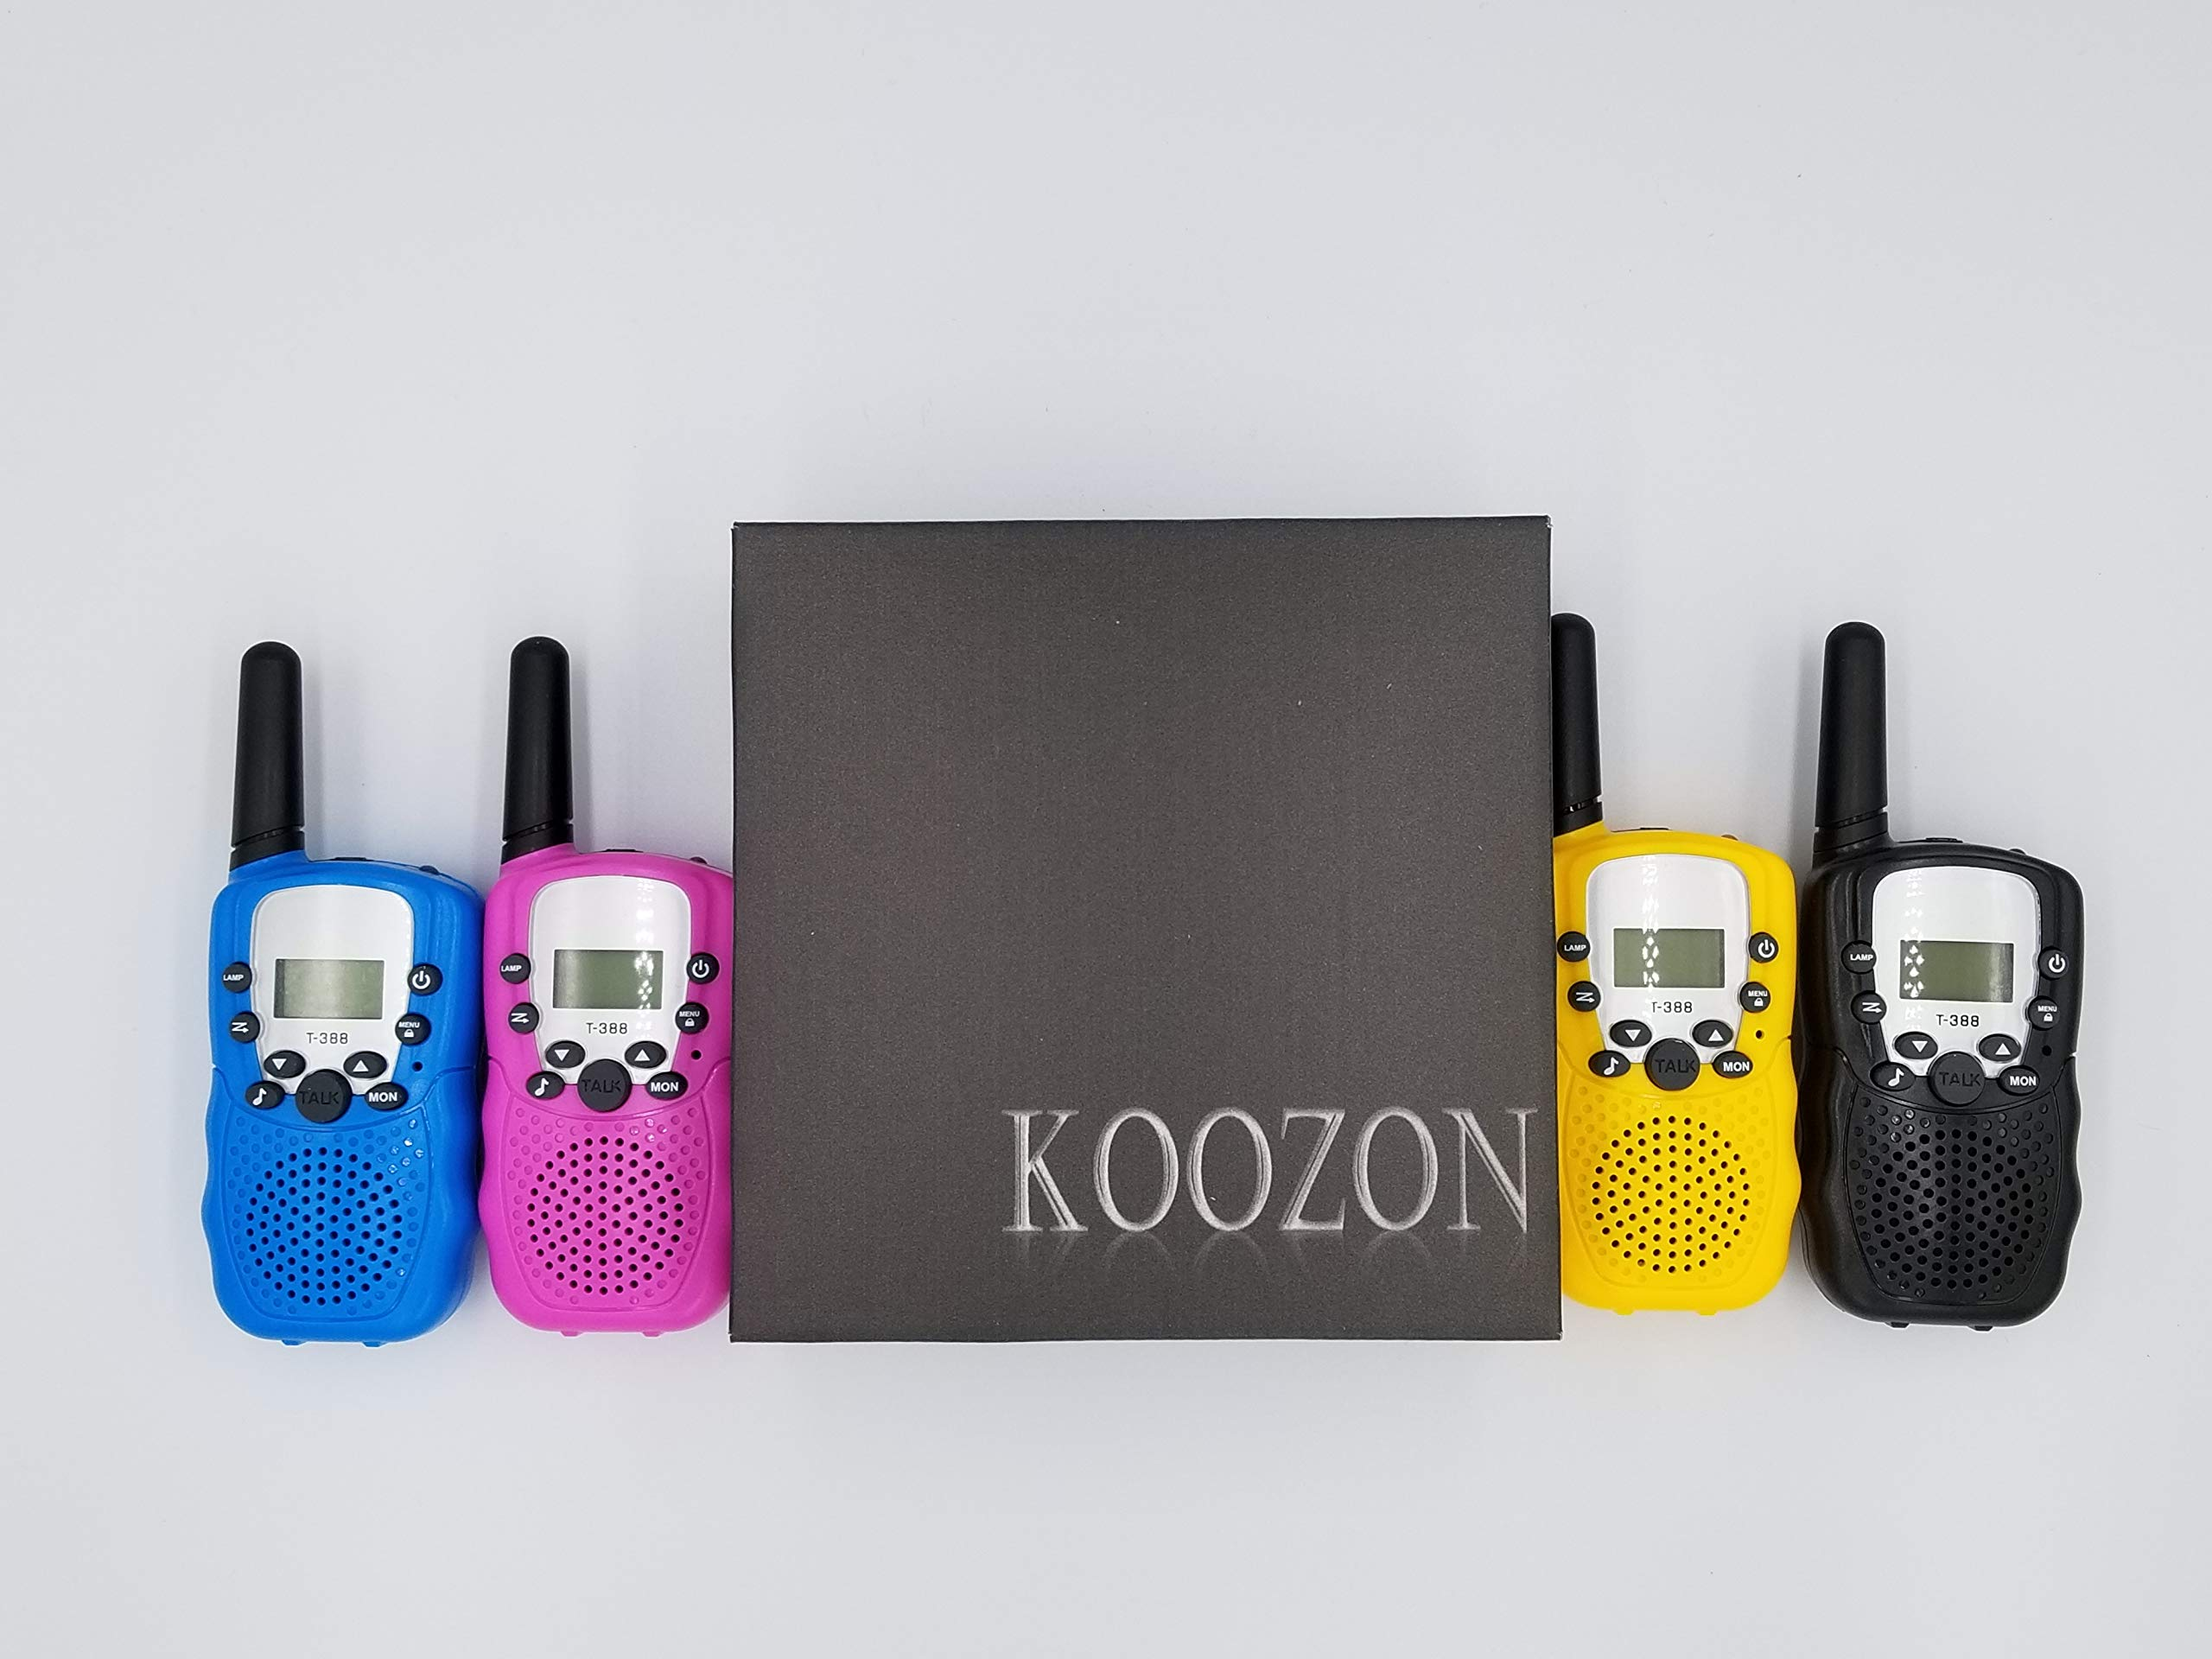 KoozonKid 4 Pack Walkie Talkies for Kids, 22 Channels 2 Way Radio Toy, Colorful Cute Kids Wakie Talkie with LCD Flashlight and Earphone Jack, Outdoor Adventures, Camping, Hiking, 2 Miles Long Range by KoozonKid (Image #1)